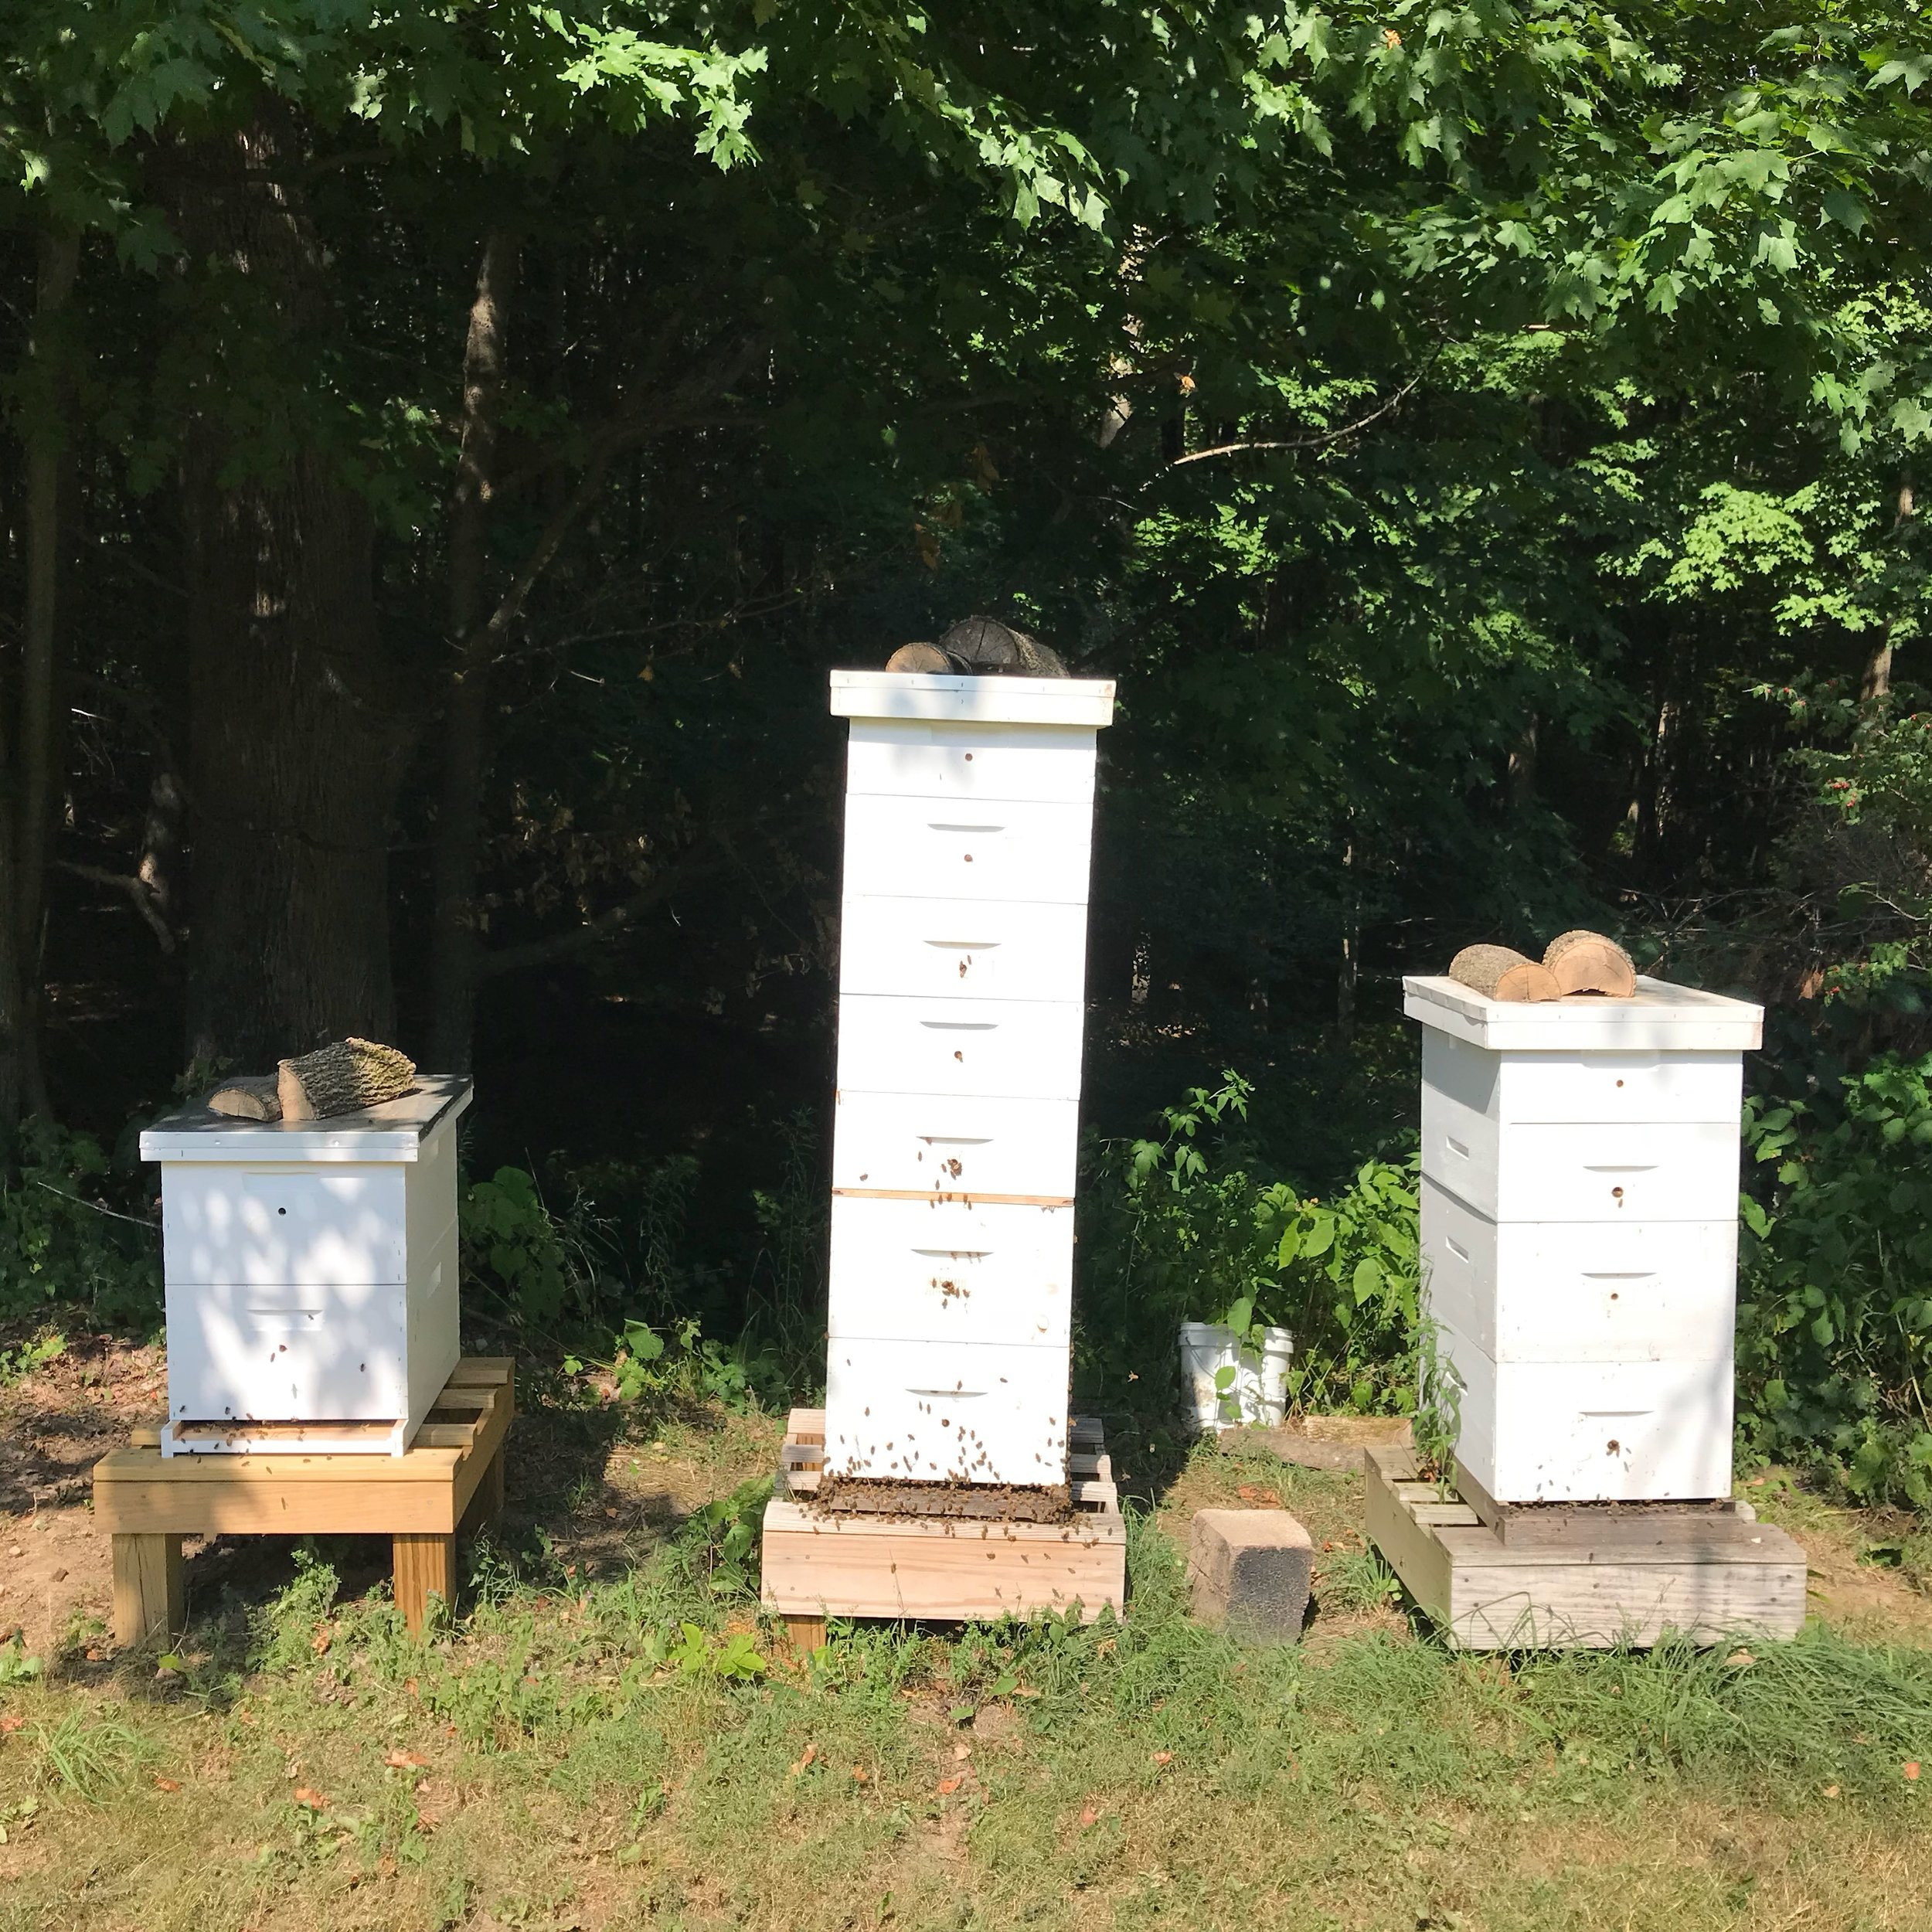 THESE HIVES ARE BUSY ON A HOT SUMMER DAY